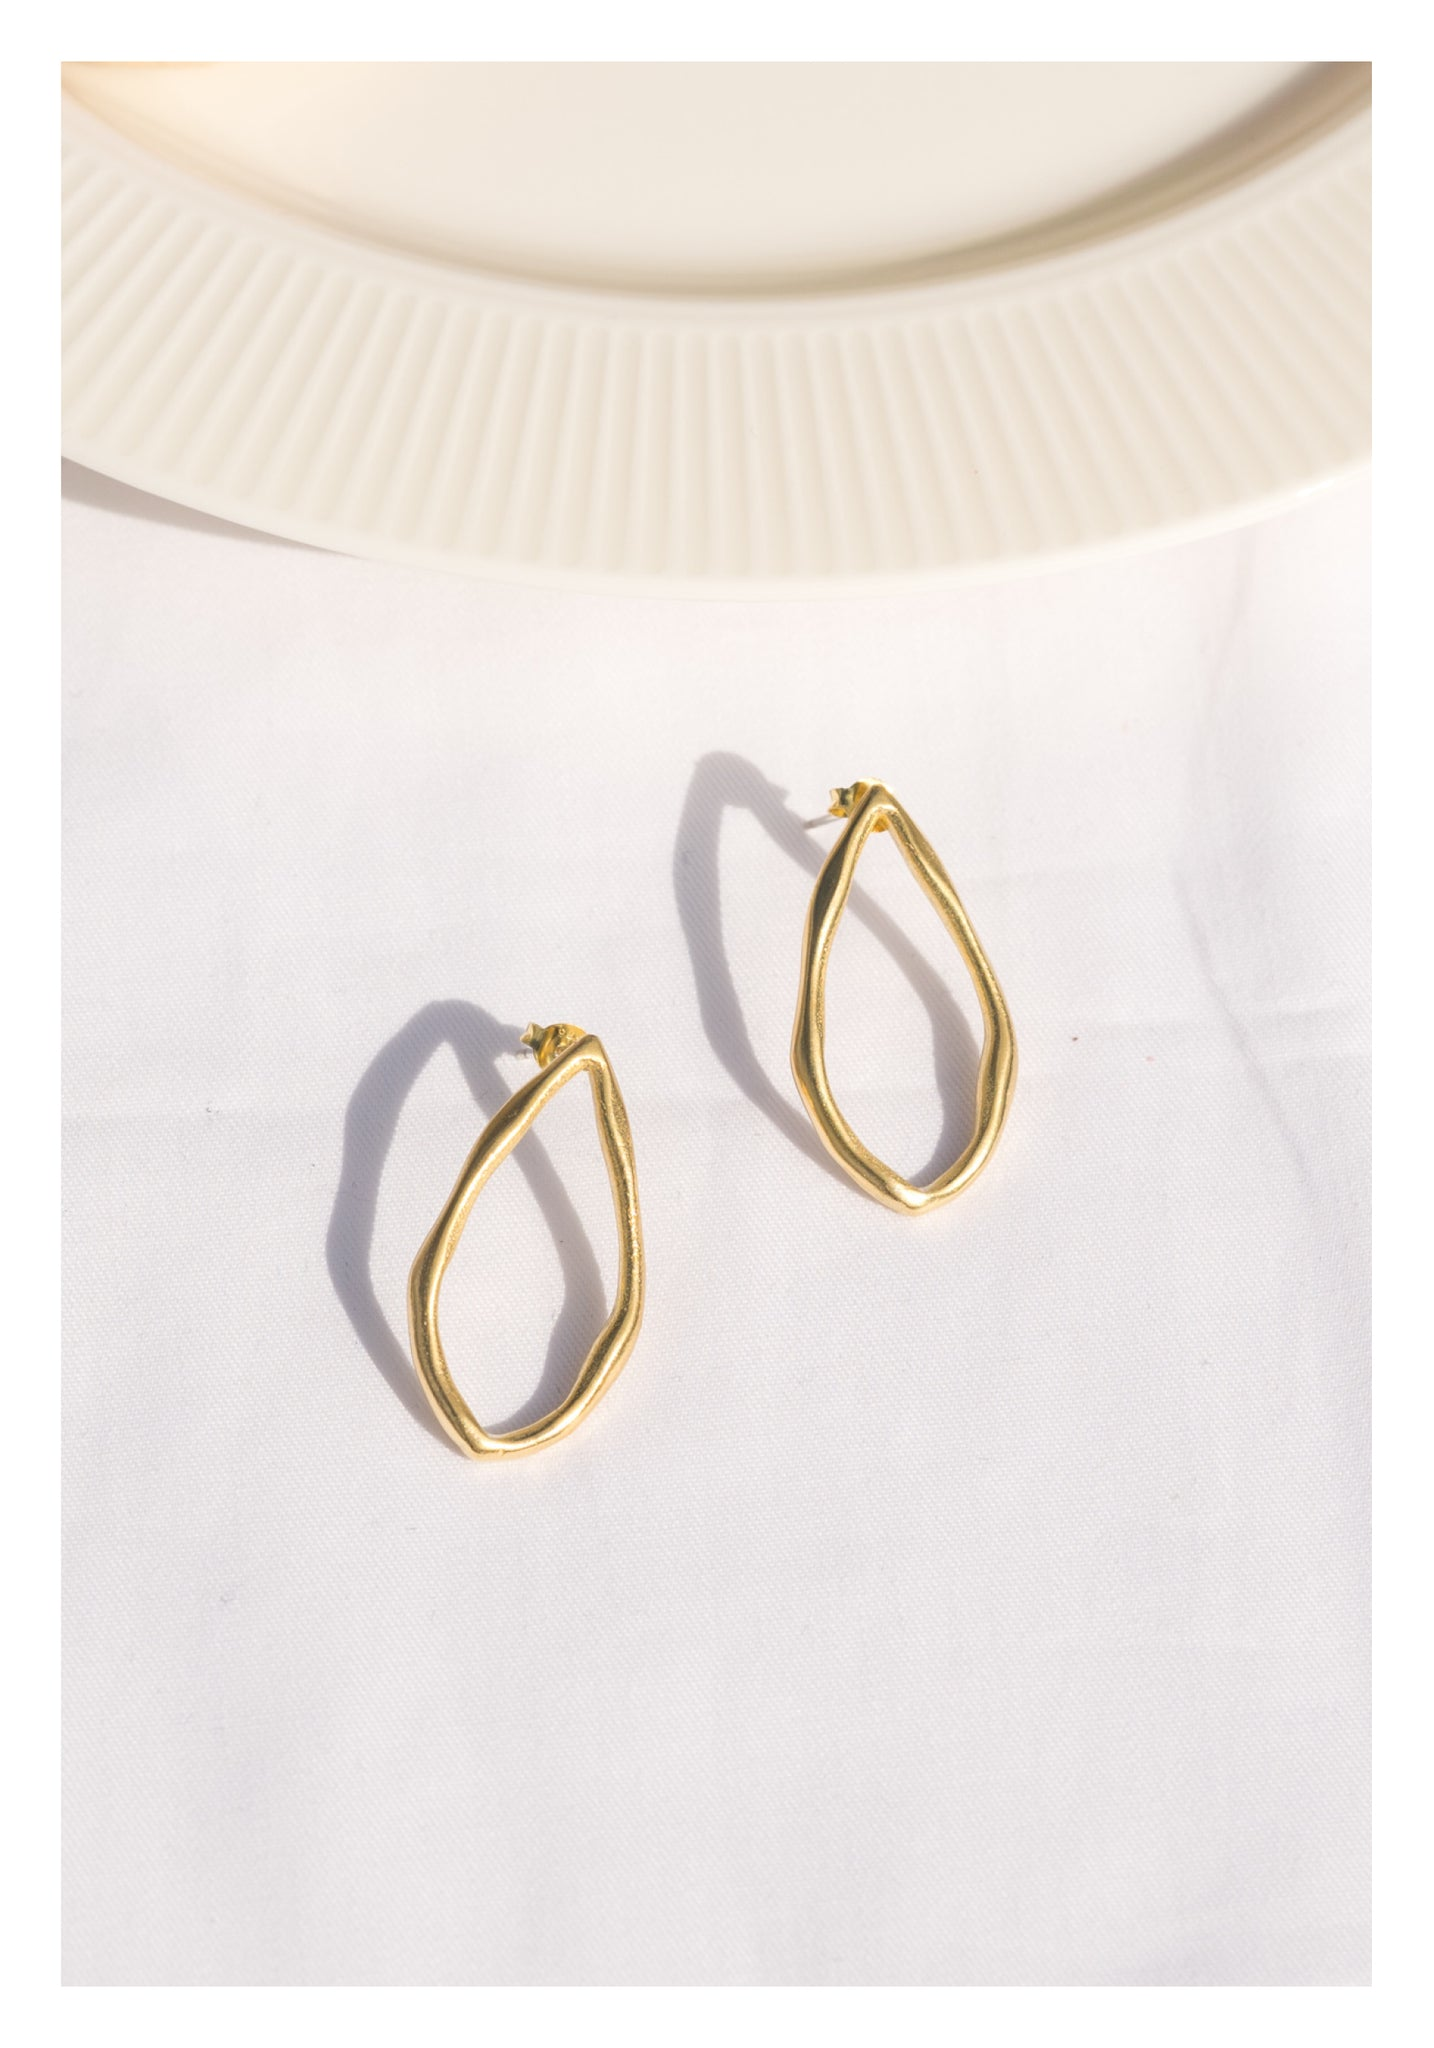 925 Silver Golden Water Drop Ring Earrings